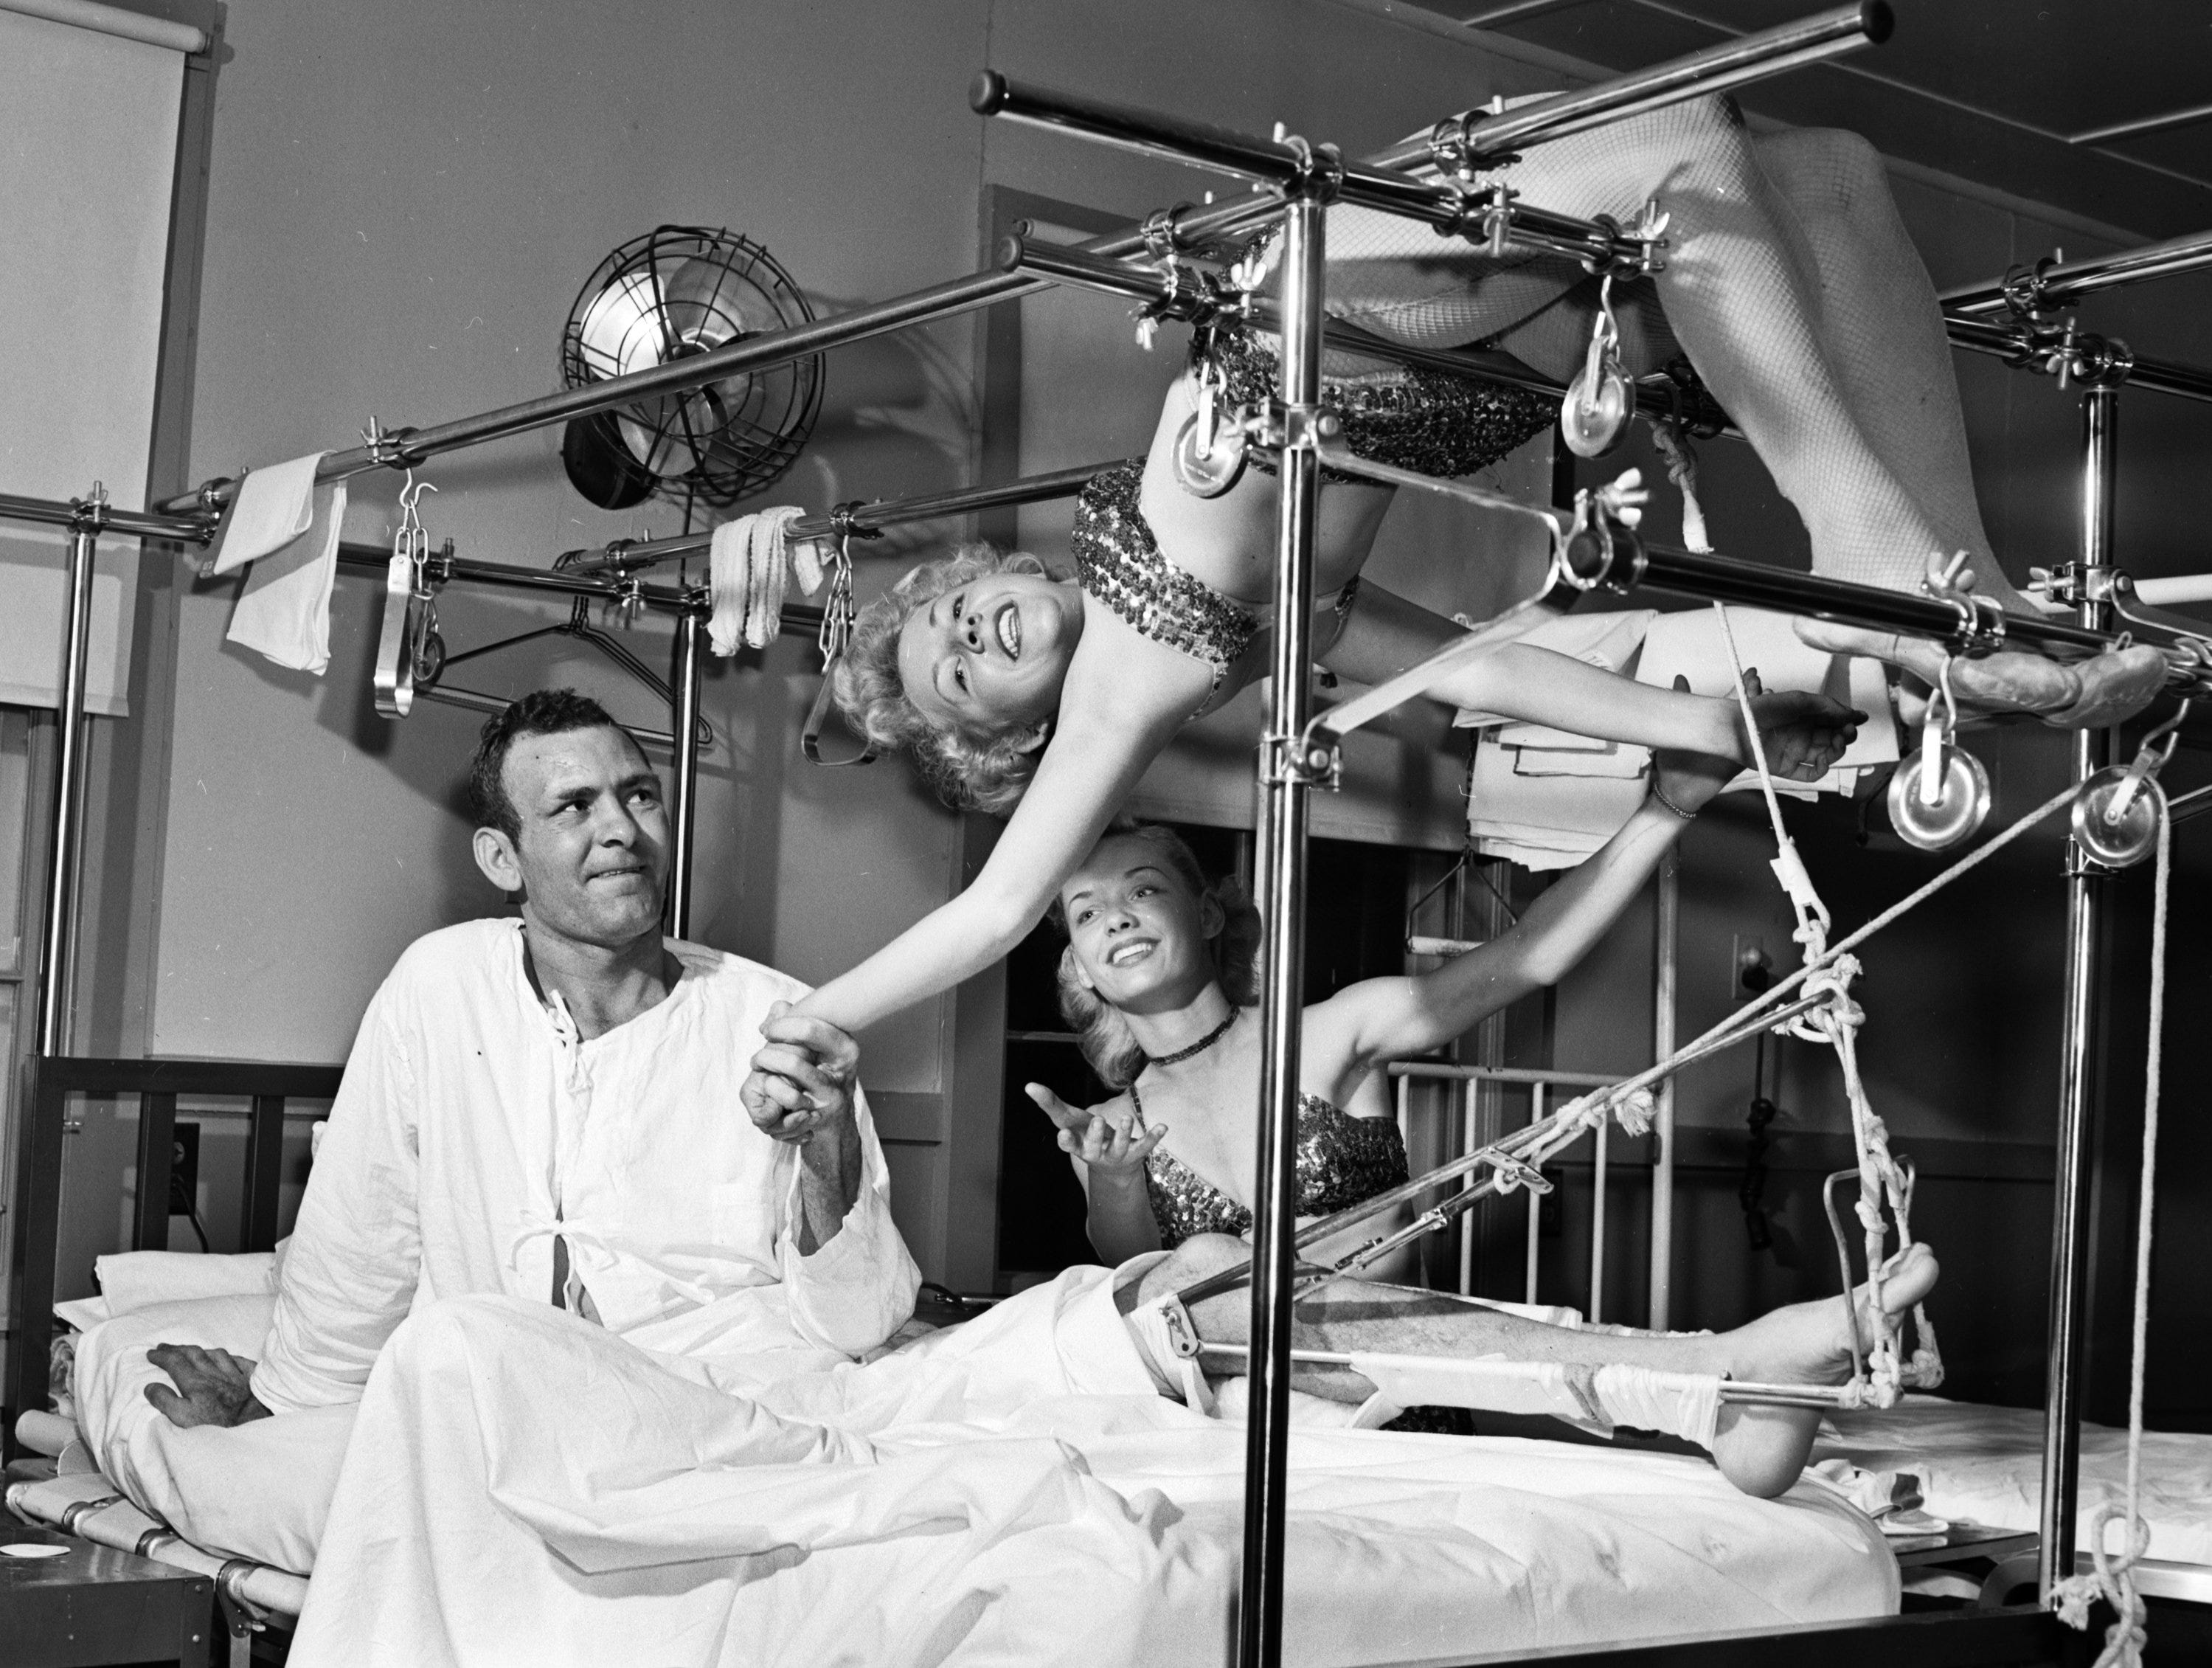 The Shrine Circus went to Memphis Naval Hospital at Millington in February 1951 for a special free performance and after the show went into the wards so even those in bed could see.  Army Sgt. Harvey Boles gives a happy helping hand to Pat McFarland when she goes into her acrobatic act on the bars over his bed.  Also giving support is Jo Power, another circus aerialist.